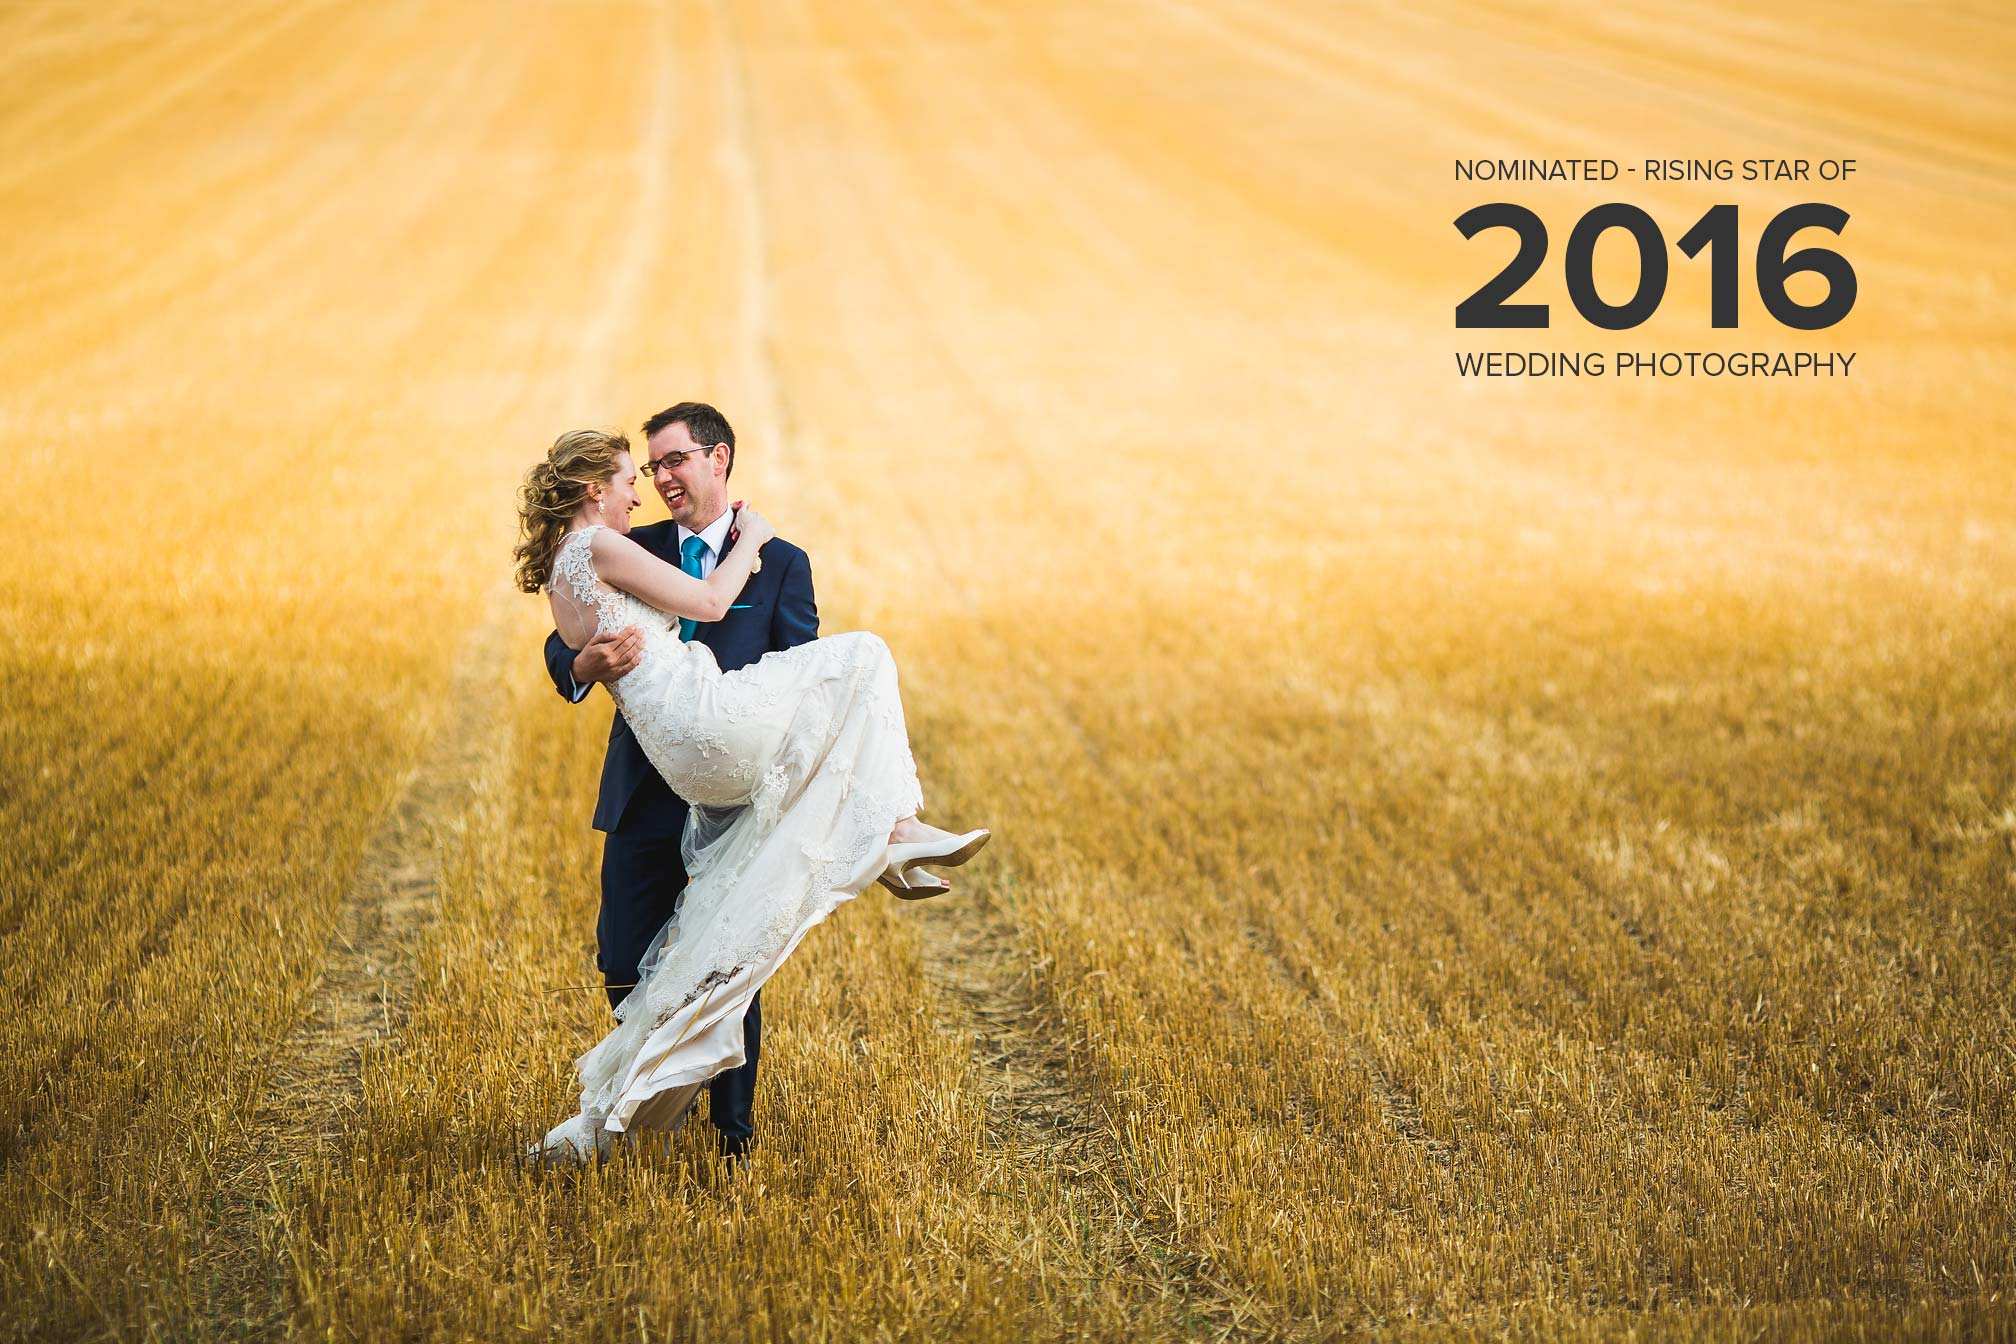 Rangefinder Magazine 30 Rising Stars of Wedding Photography 2016